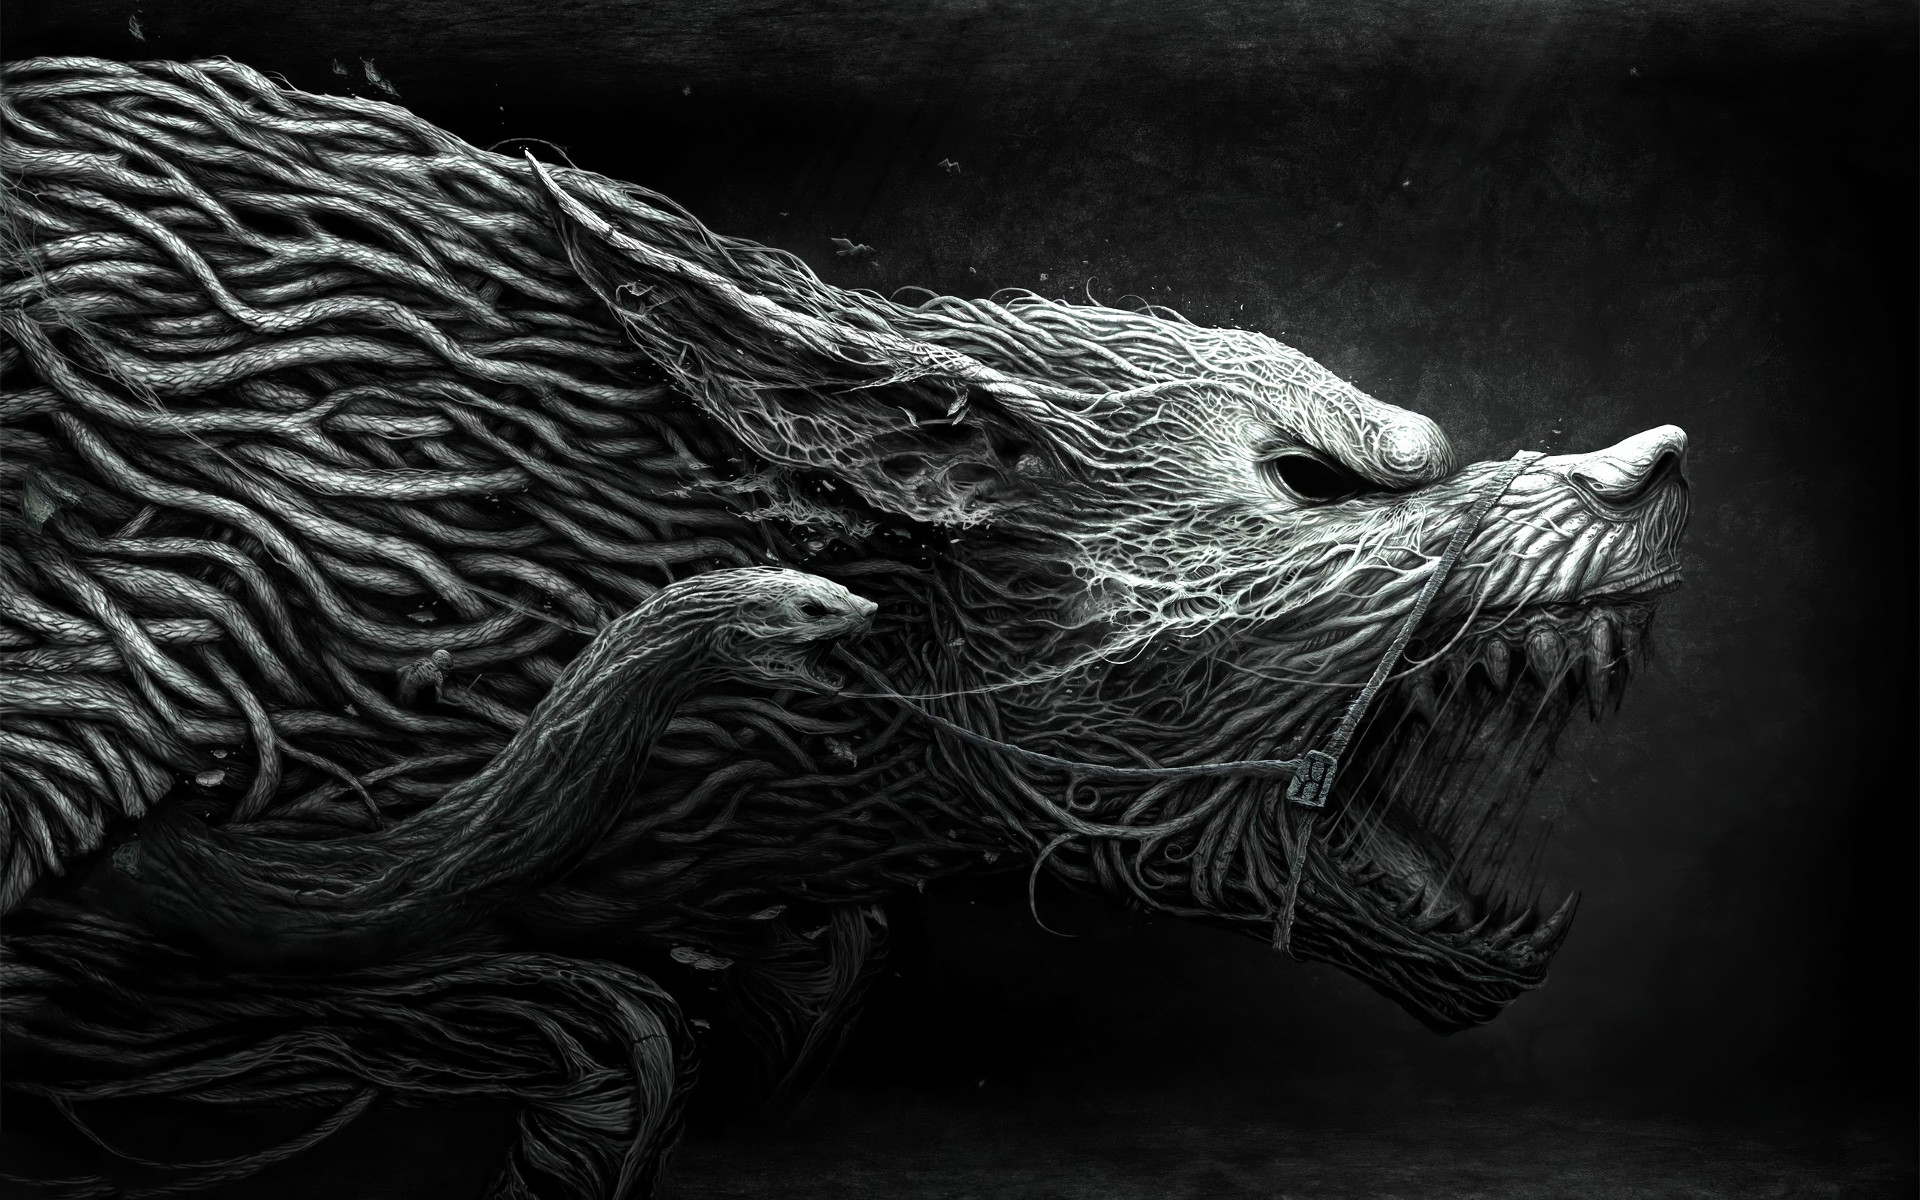 1920x1200 Dark - Werewolf Dark Animal Fantasy Creature Snake Black Creepy Wallpaper